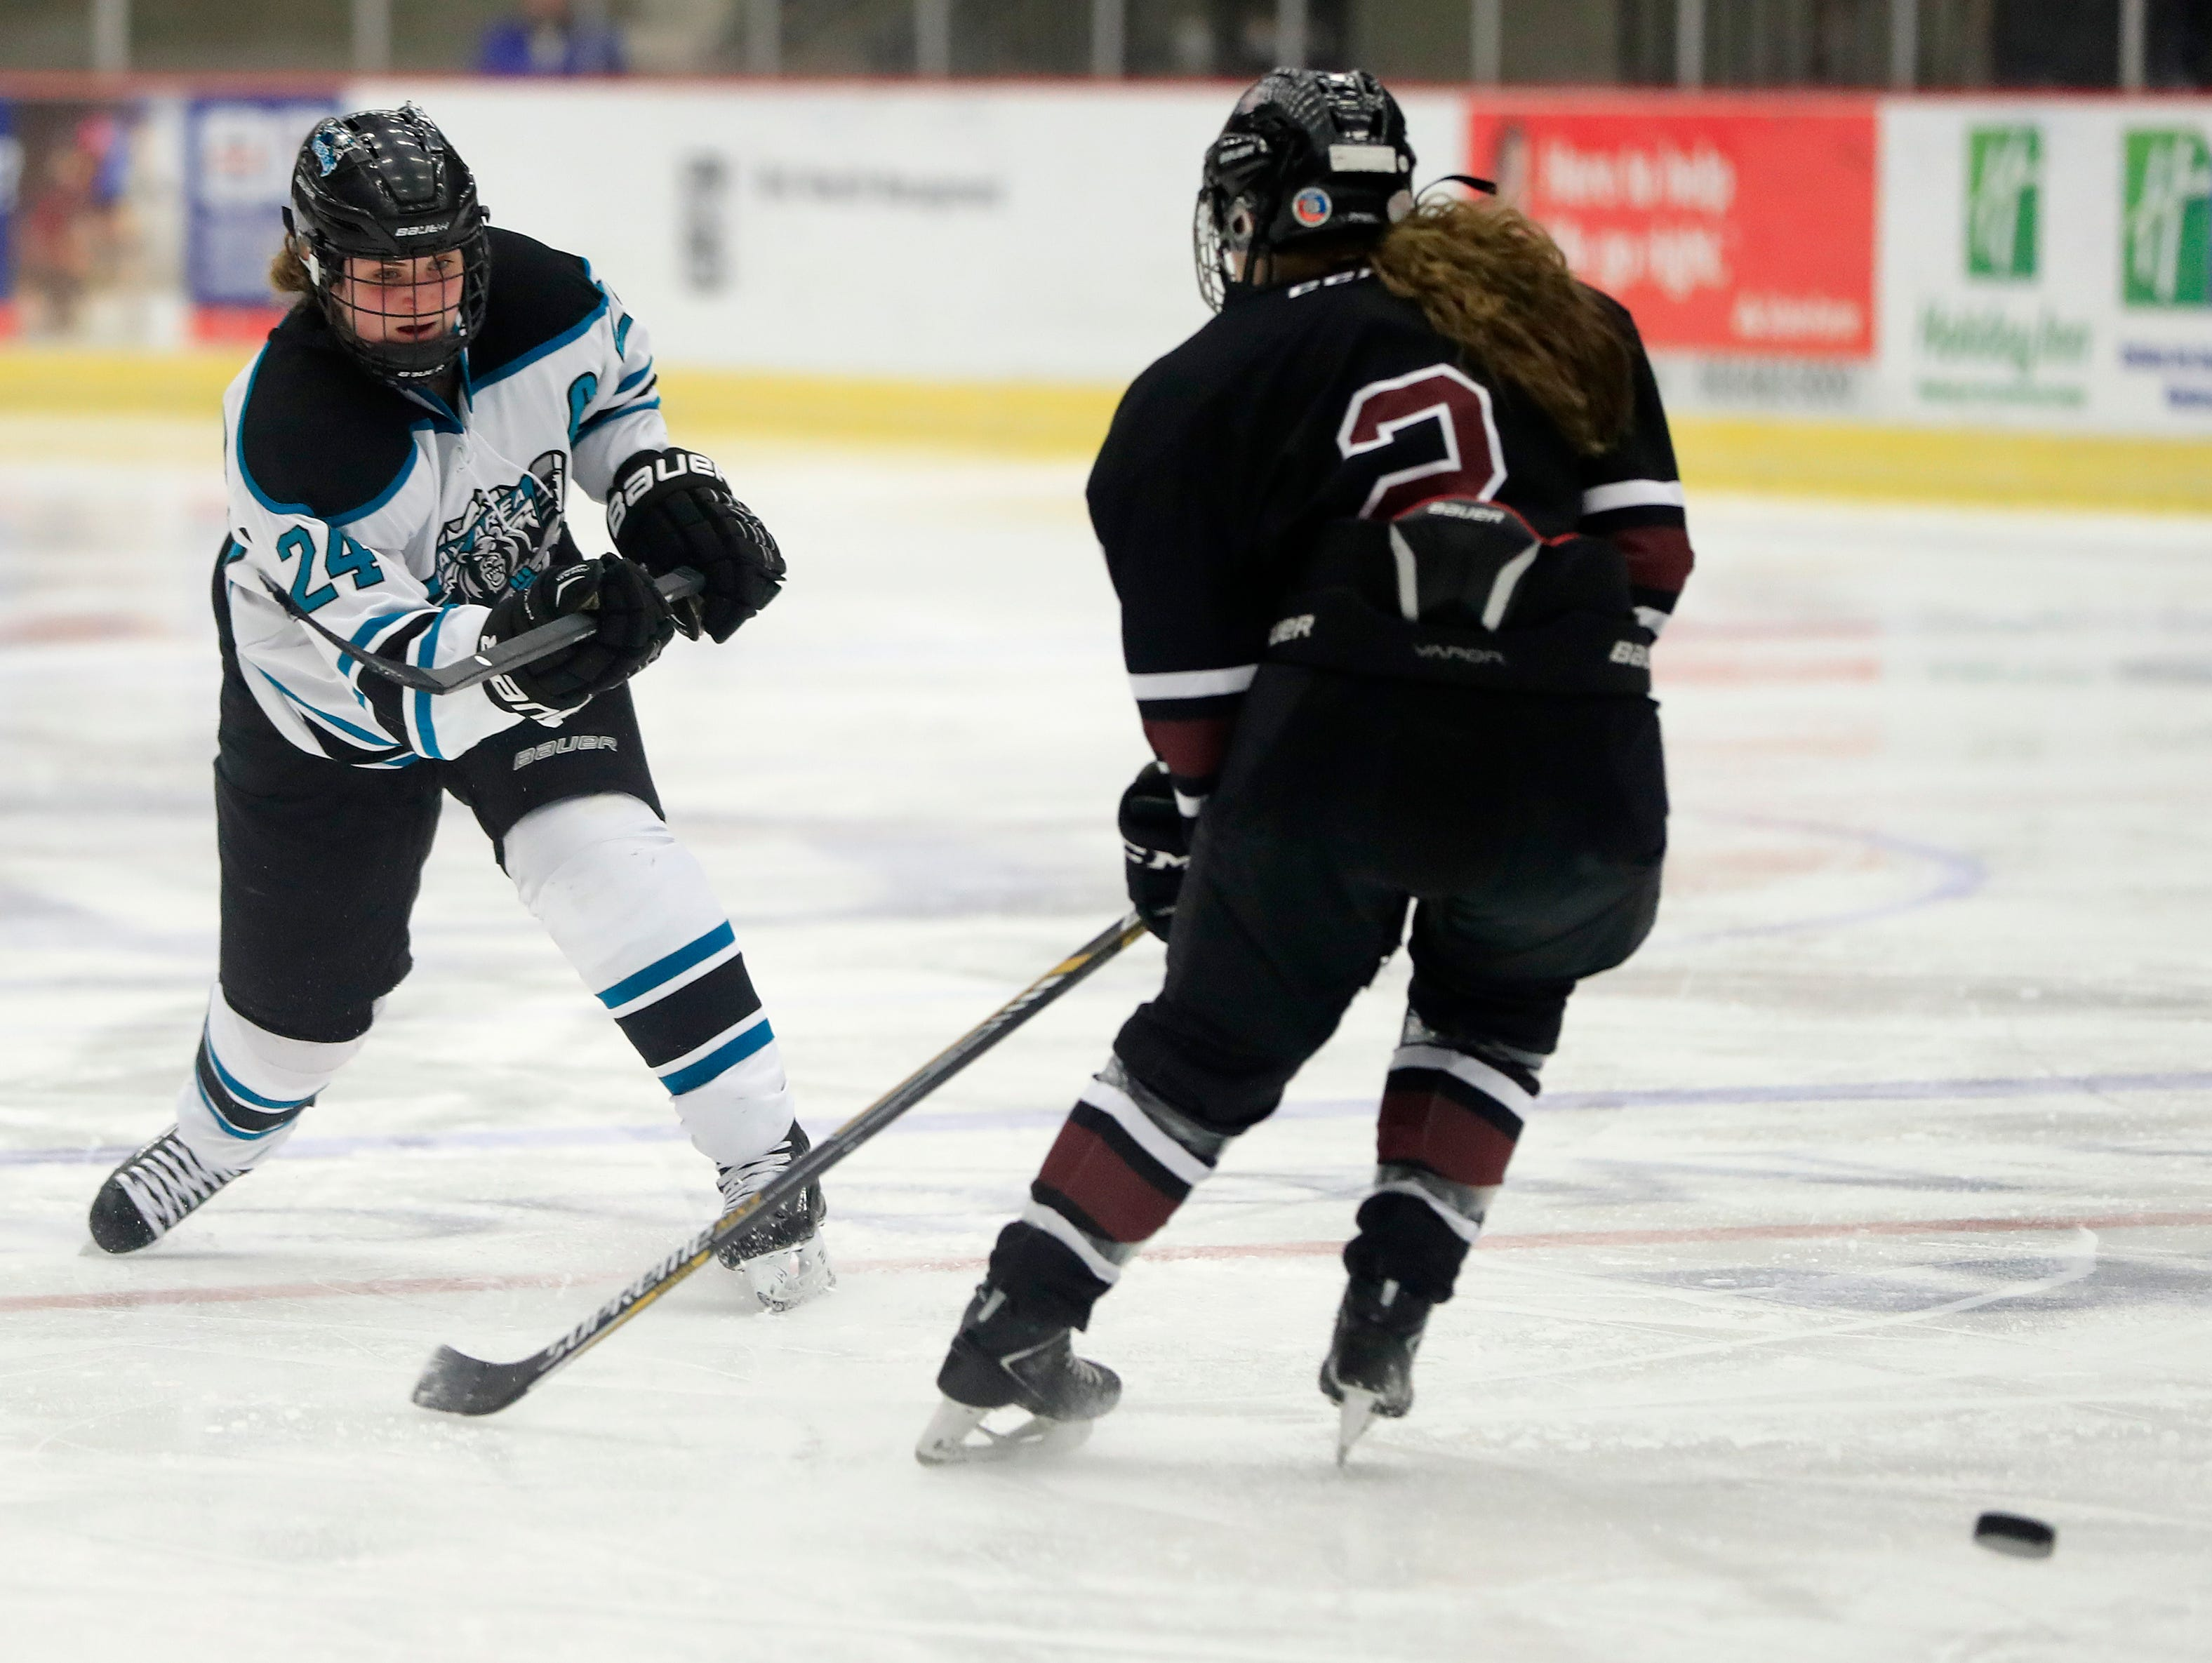 Bay Area Ice Bears defenseman Mia Dunning (24) shoots against the Central Wisconsin Storm in the championship match at the 2017 State Hockey Tournament at Veterans Memorial Coliseum on Saturday, March 4, 2017, in Madison, Wis. The Storm won the match 2-1 in overtime. Adam Wesley/USA TODAY NETWORK-Wisconsin